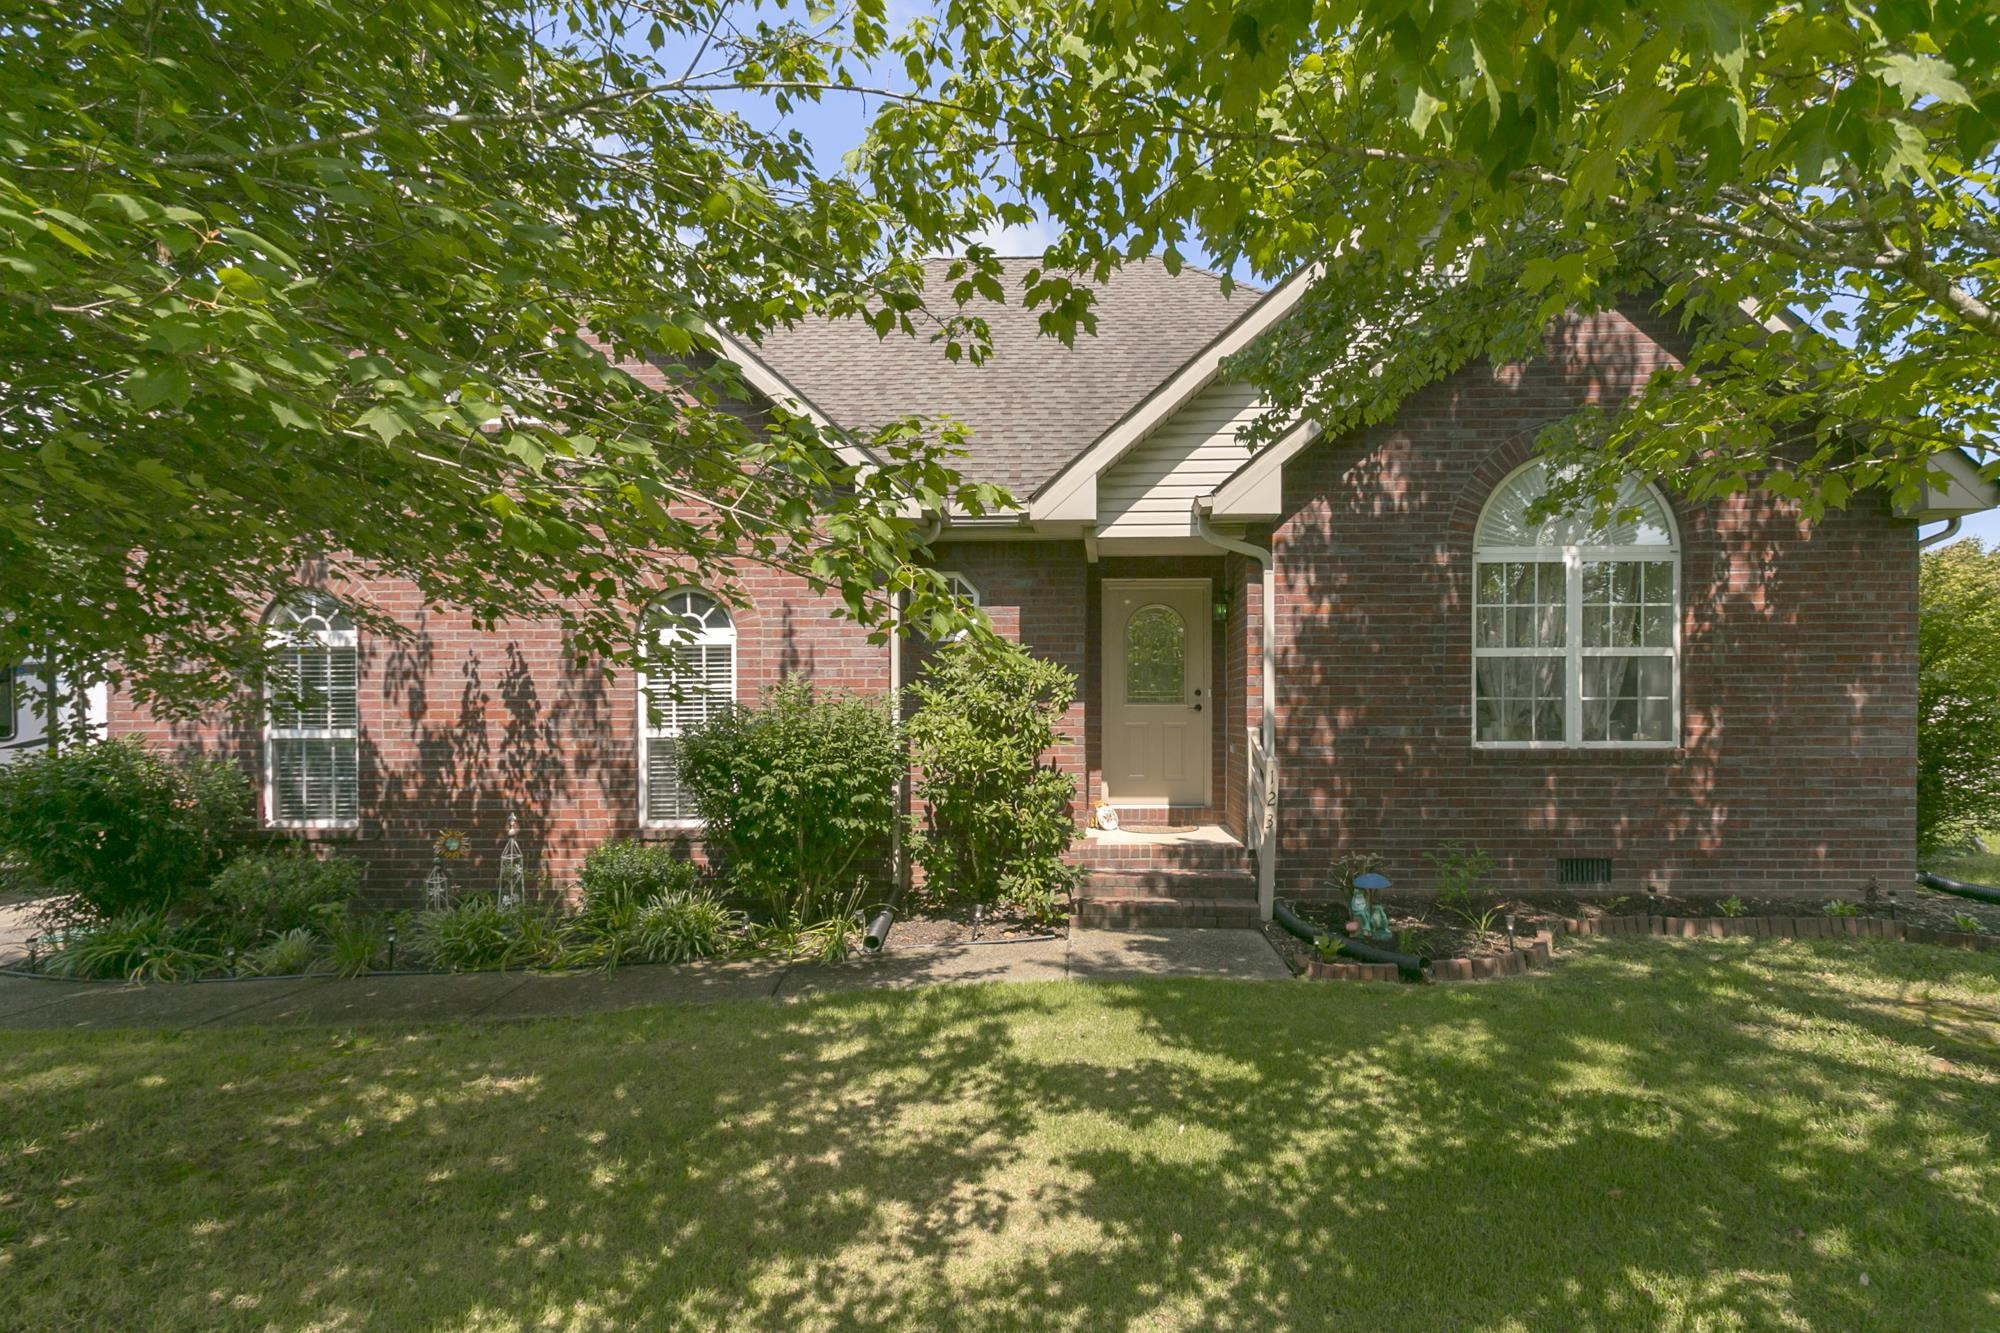 123 Four Season Dr, Murfreesboro, TN 37129 - Murfreesboro, TN real estate listing